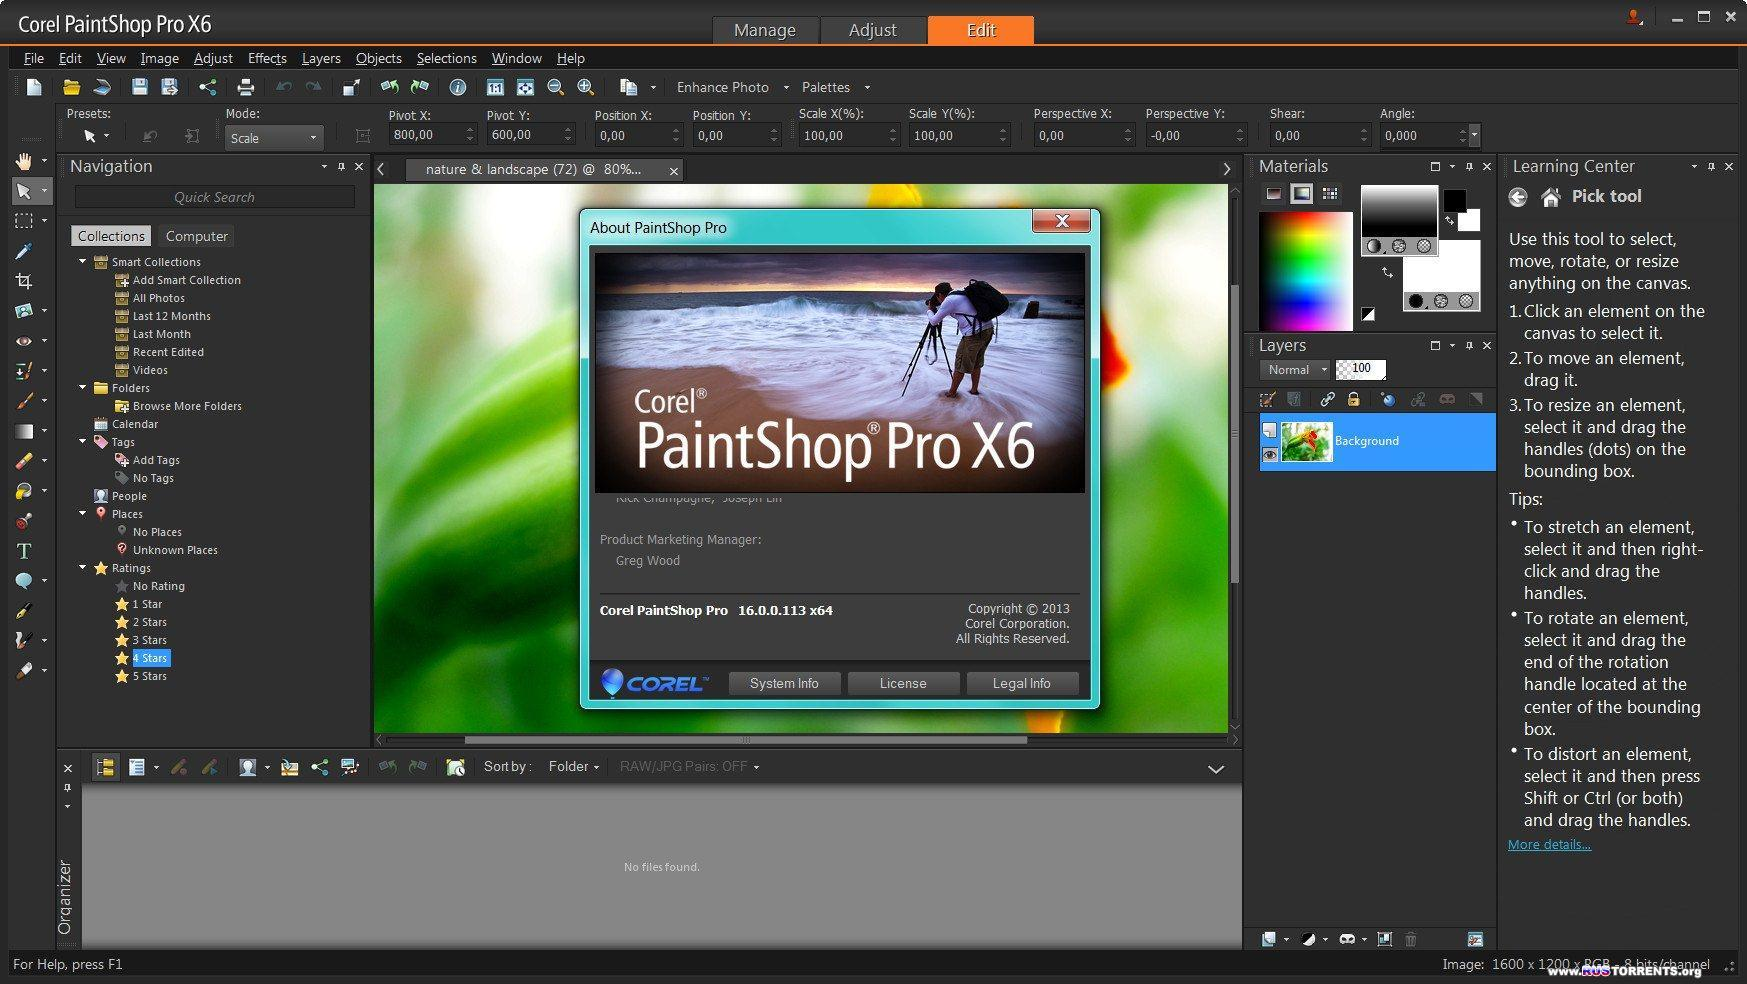 Corel PaintShop Pro X6 16.0.0.113 (ML/RUS)